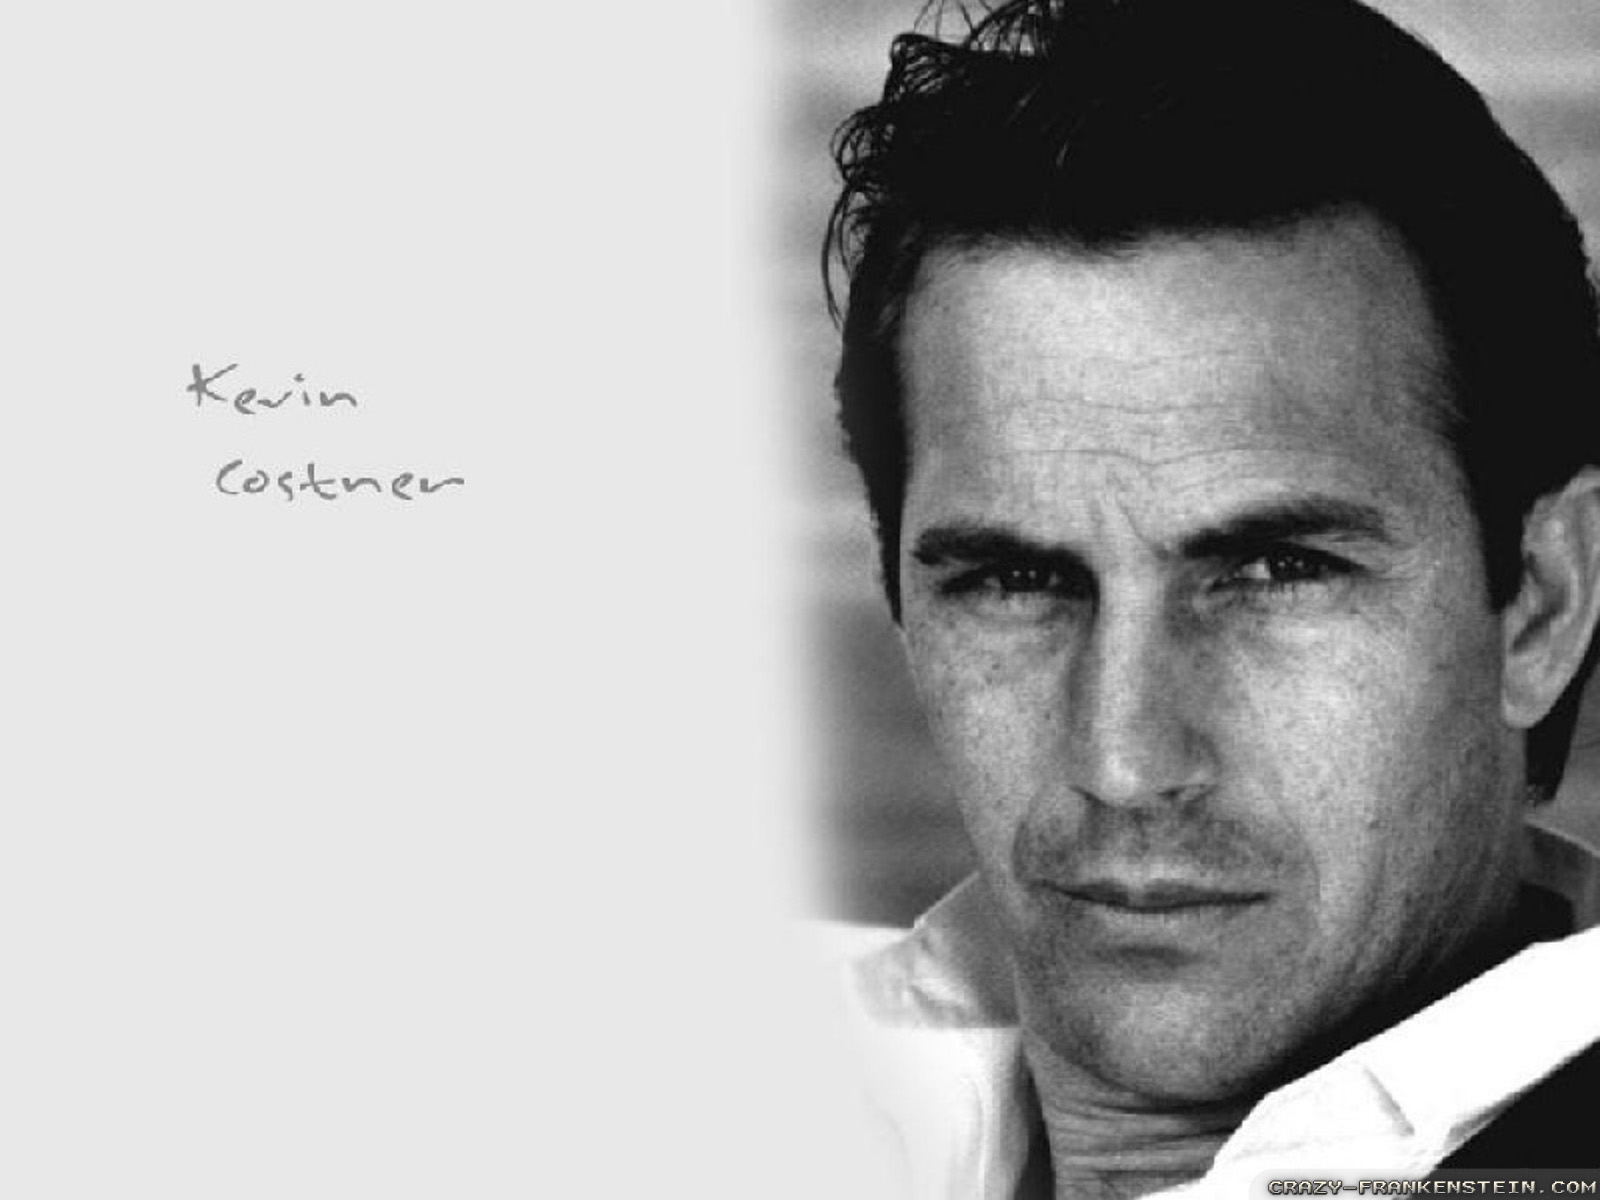 1600x1200 - Kevin Costner Wallpapers 1